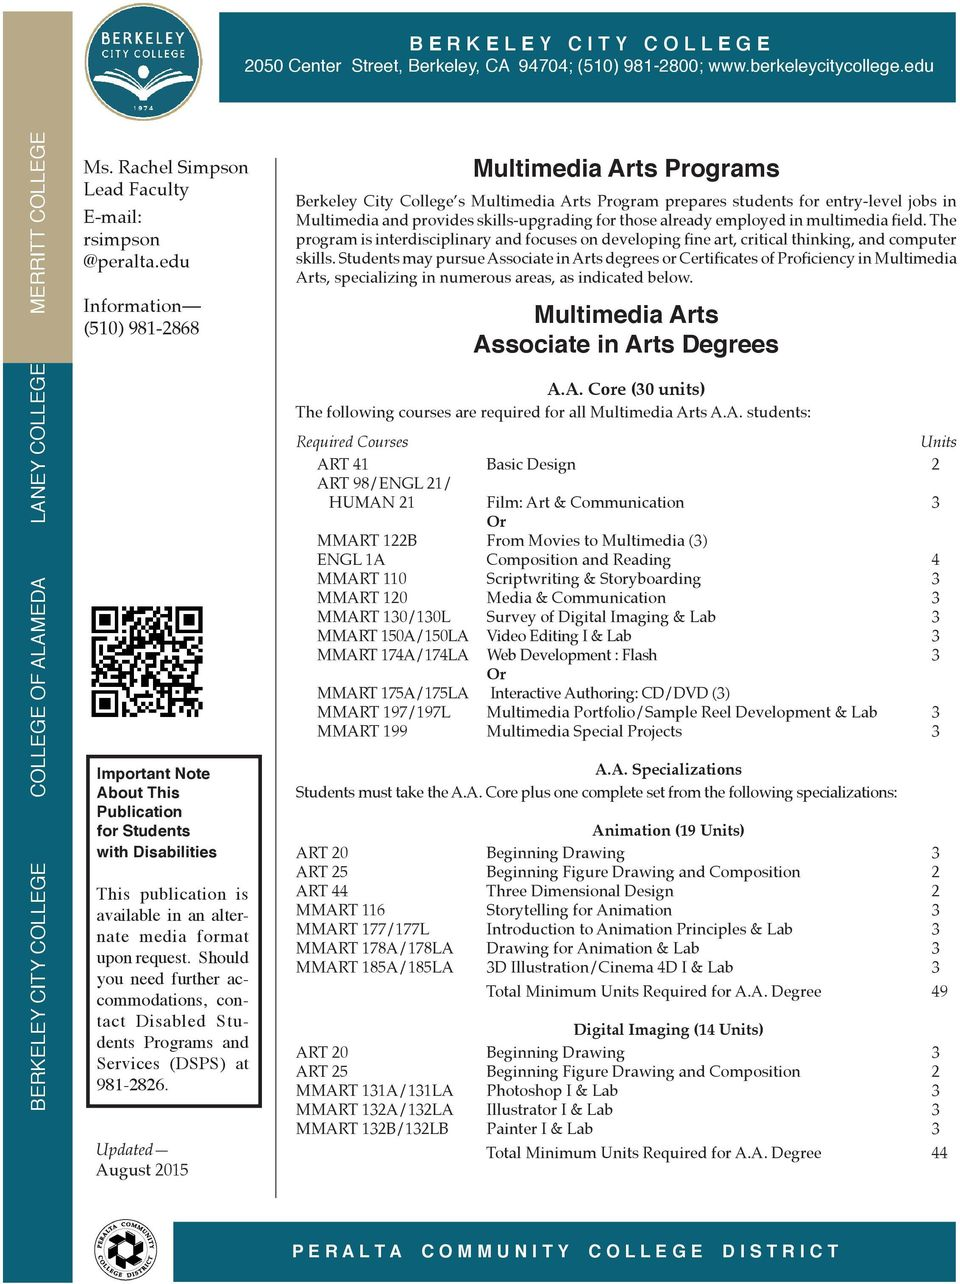 Students may pursue Associate in Arts degrees or Certificates of Proficiency in Multimedia Arts, specializing in numerous areas, as indicated below. Multimedia Arts Associate in Arts Degrees A.A. Core (30 units) The following courses are required for all Multimedia Arts A.